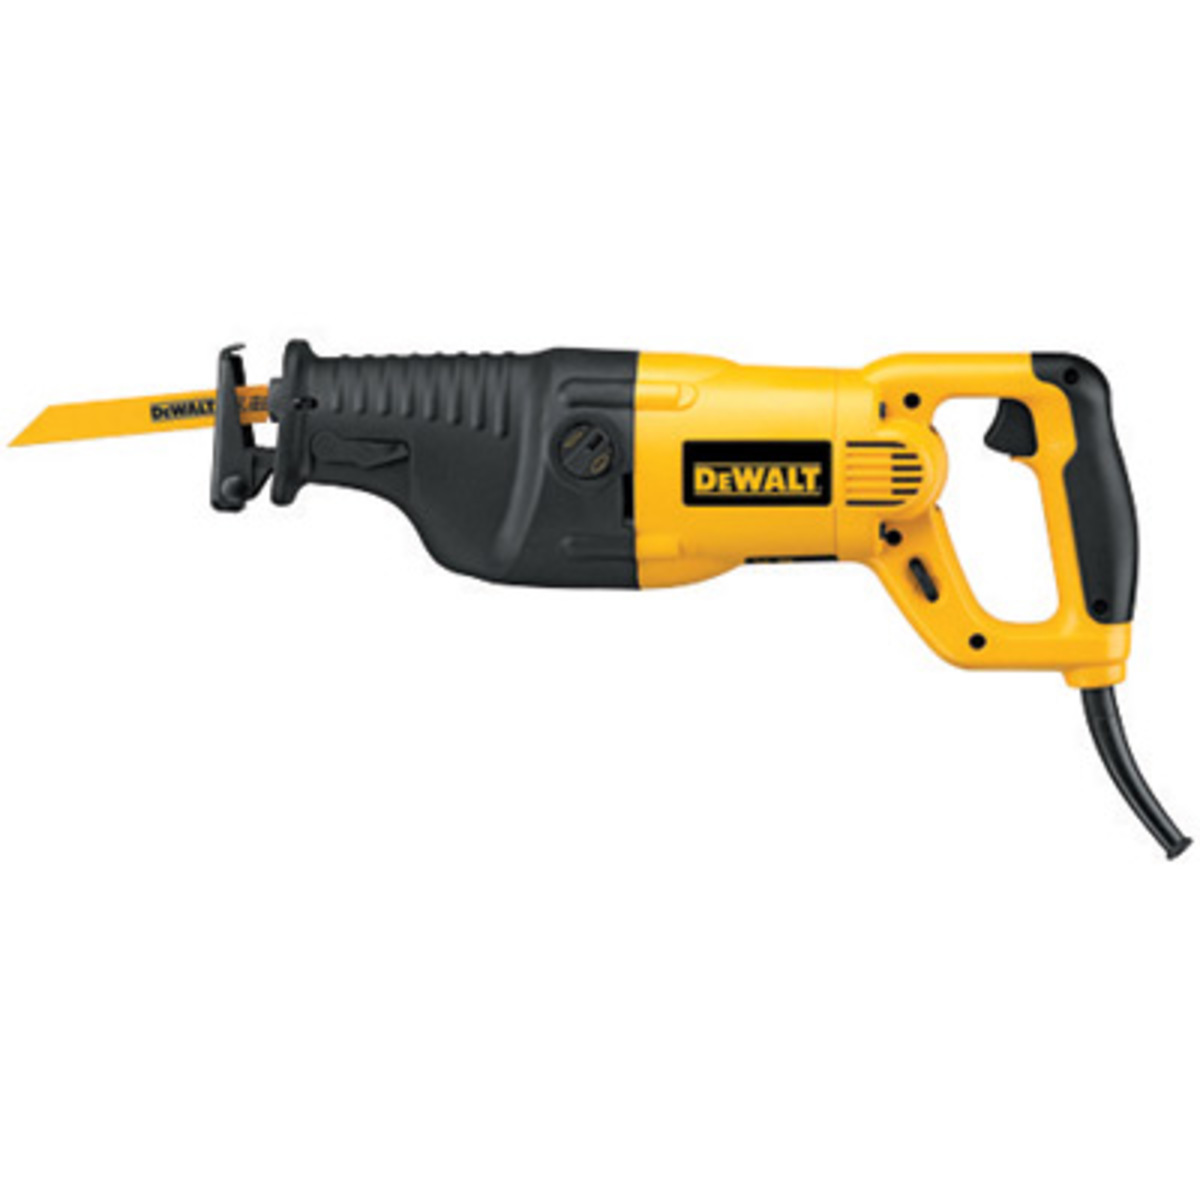 Airgas dewalt 13 a 2700 spm corded heavy duty reciprocating saw kit with keyless stainless steel keyboard keysfo Images